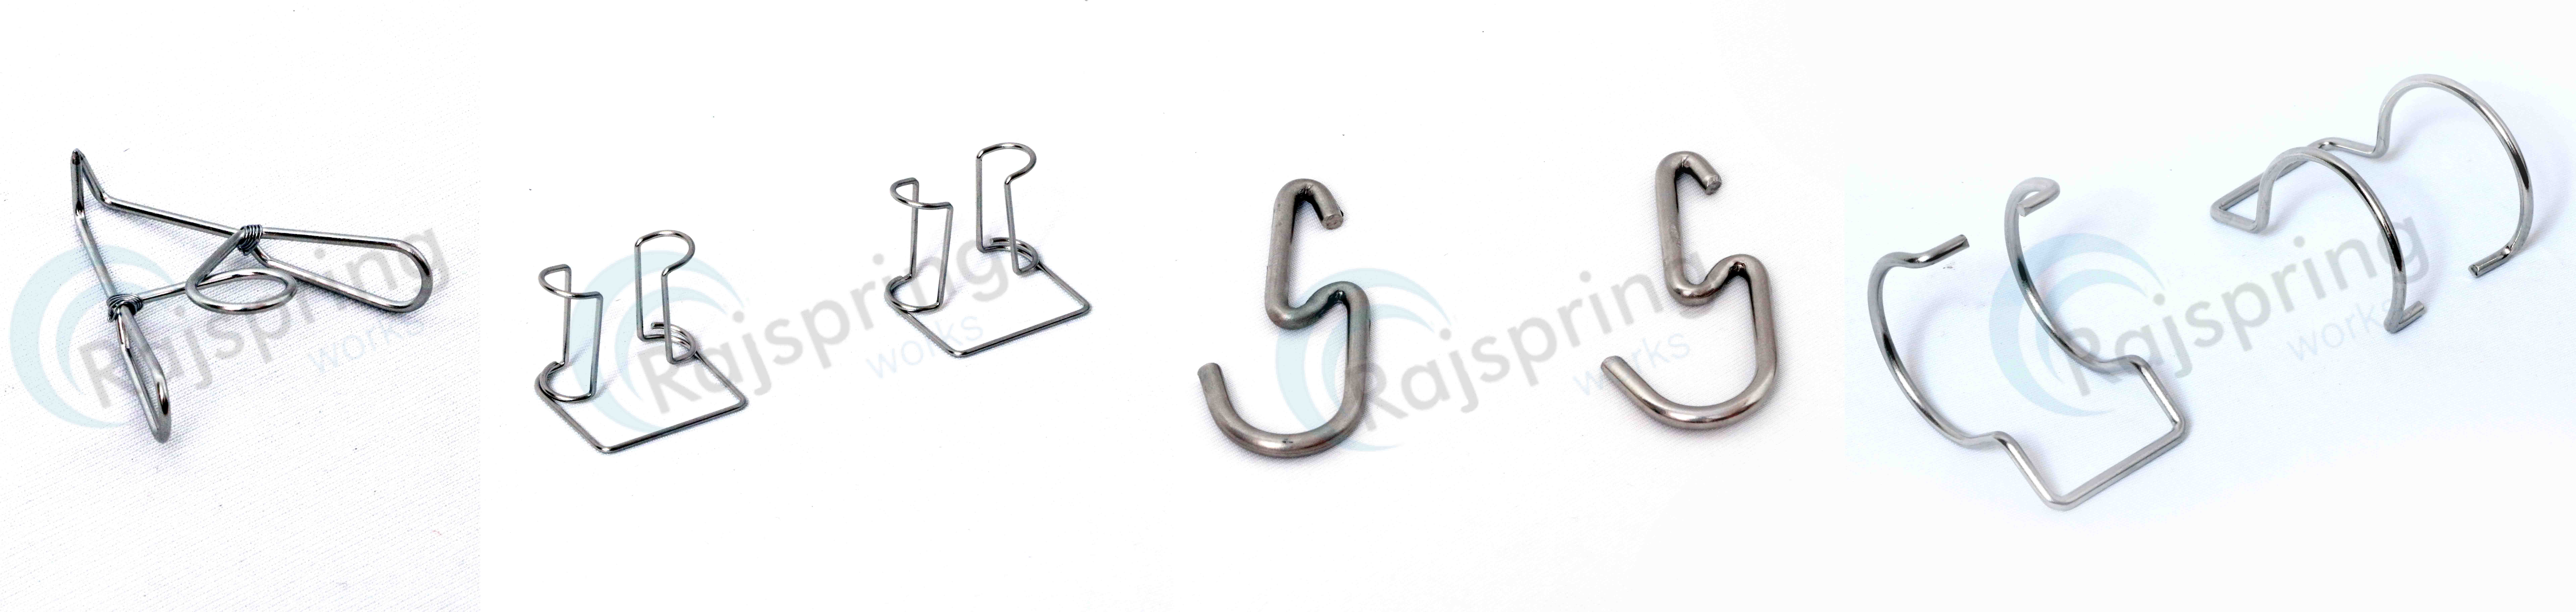 Wire Forms & Torsion Springs – Wire Forms Springs manufacturer in ...